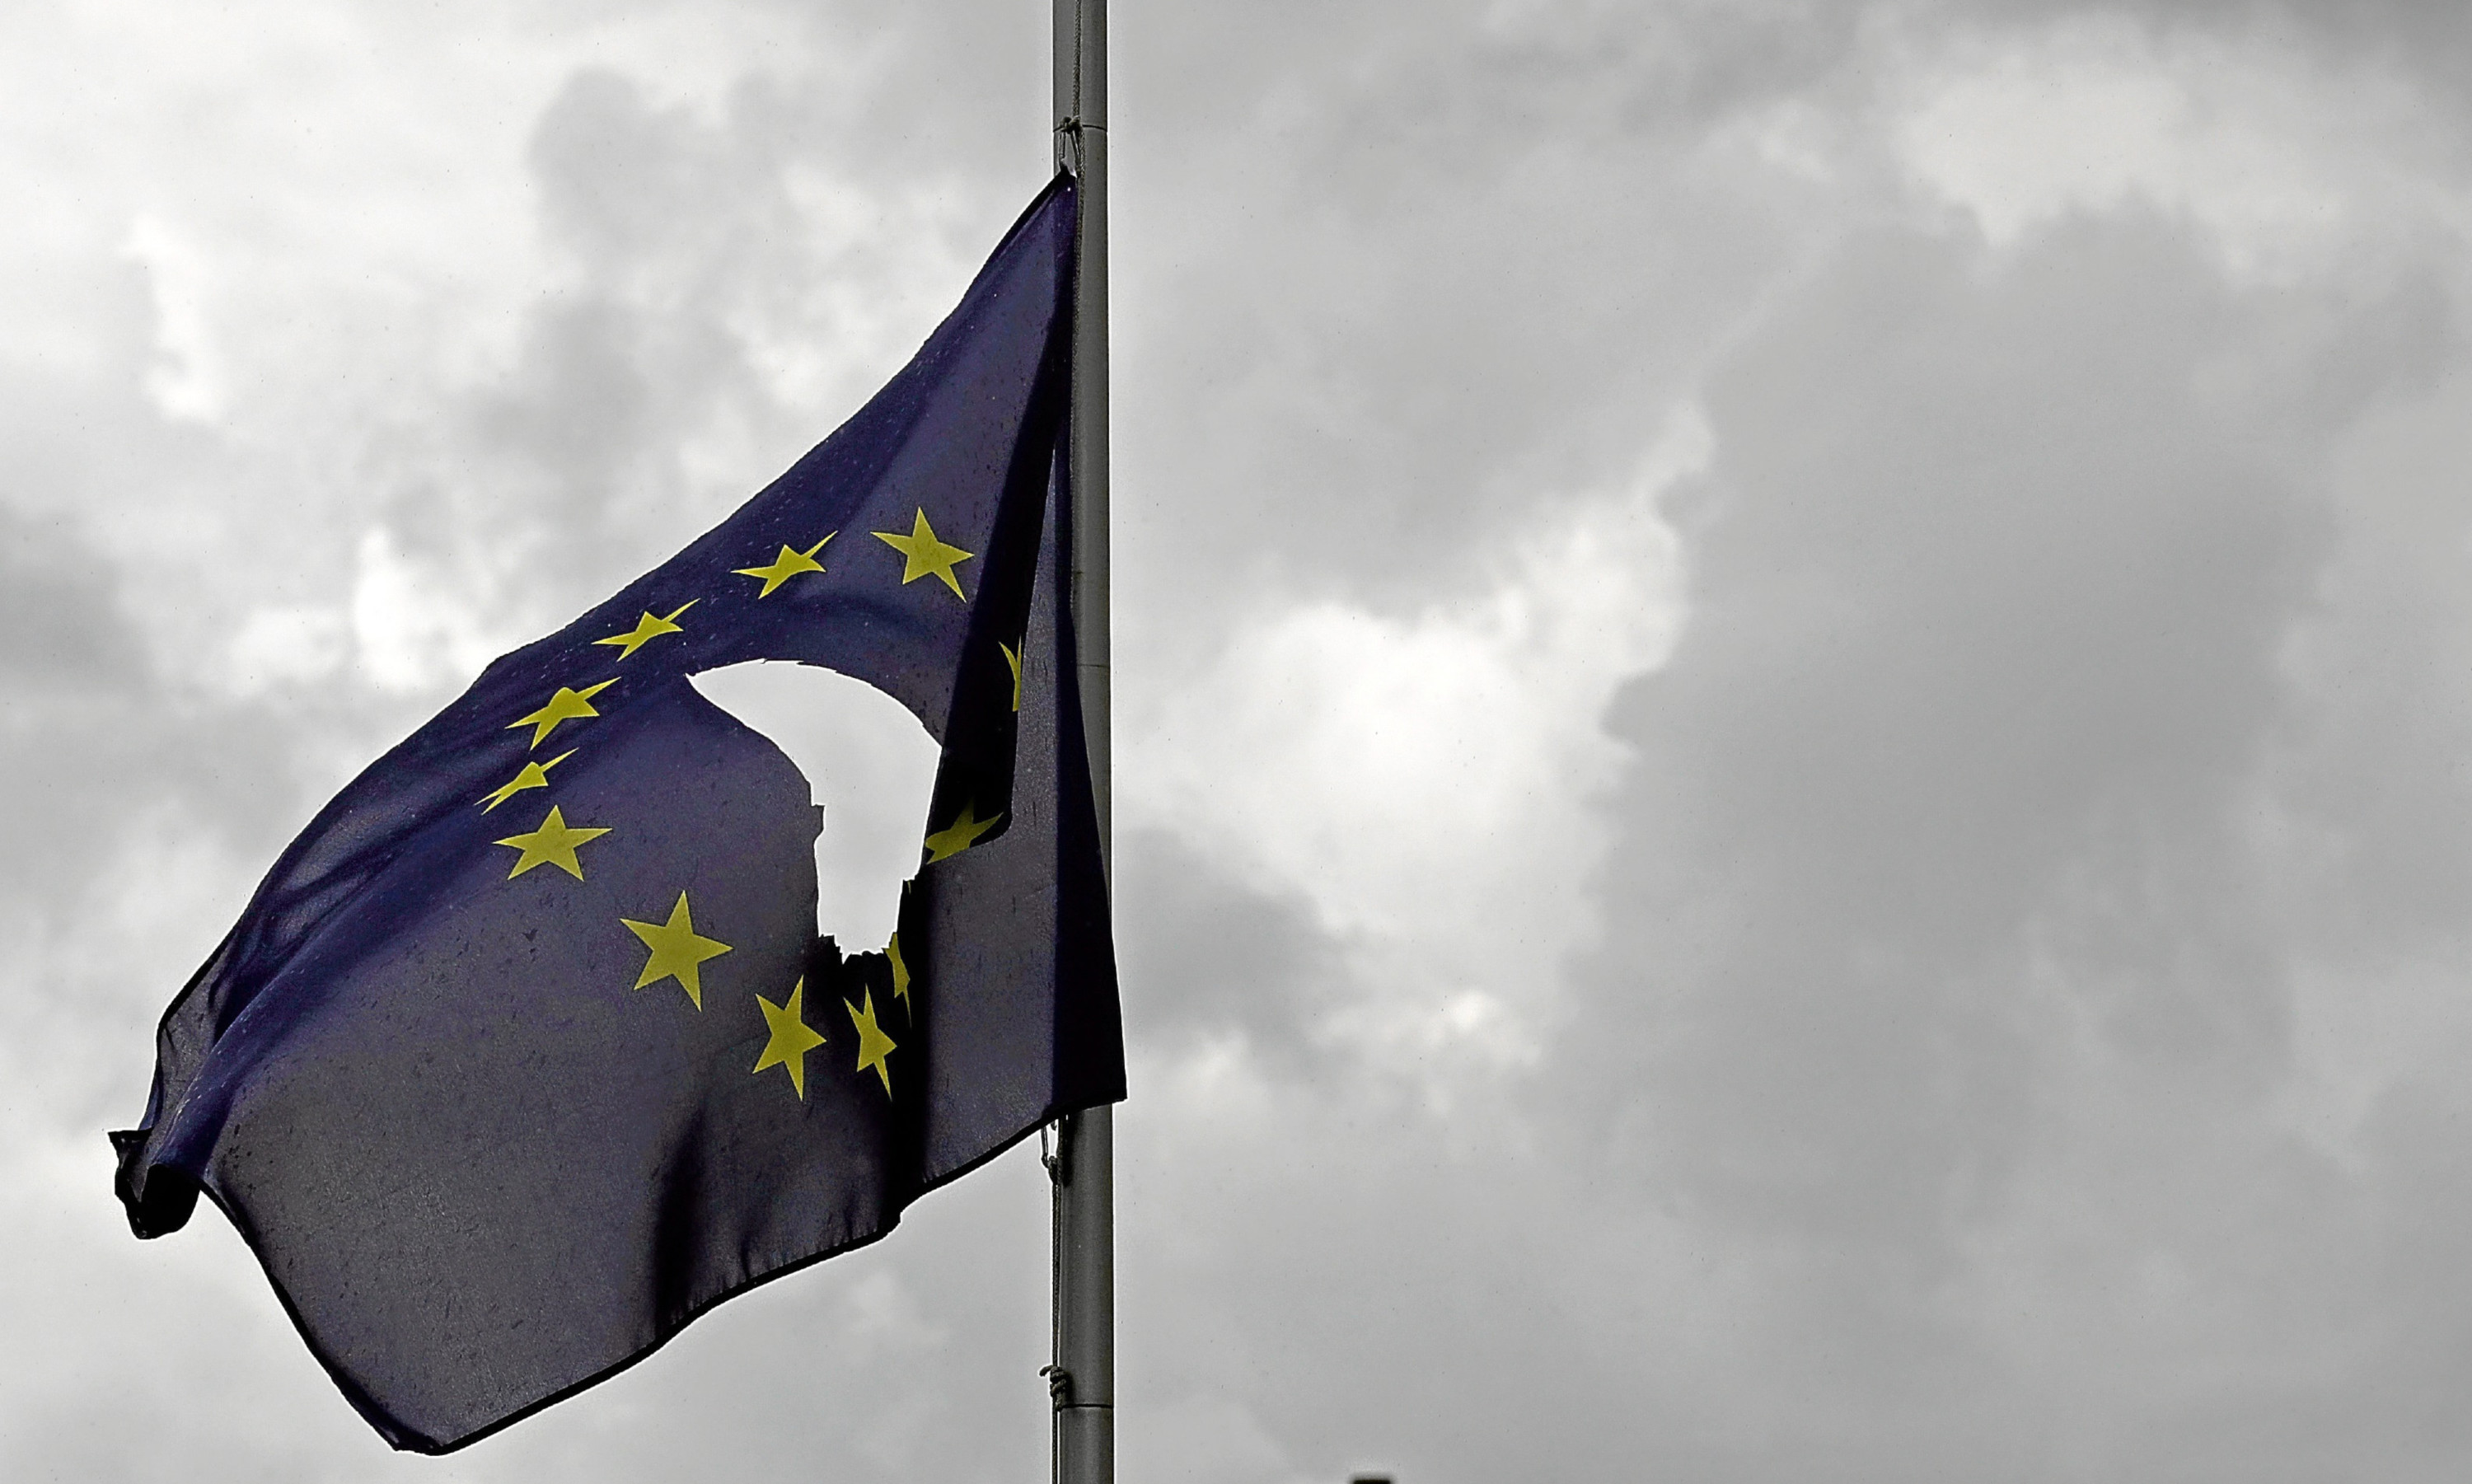 A European Union flag, with a hole cut in the middle, flies at half mast.